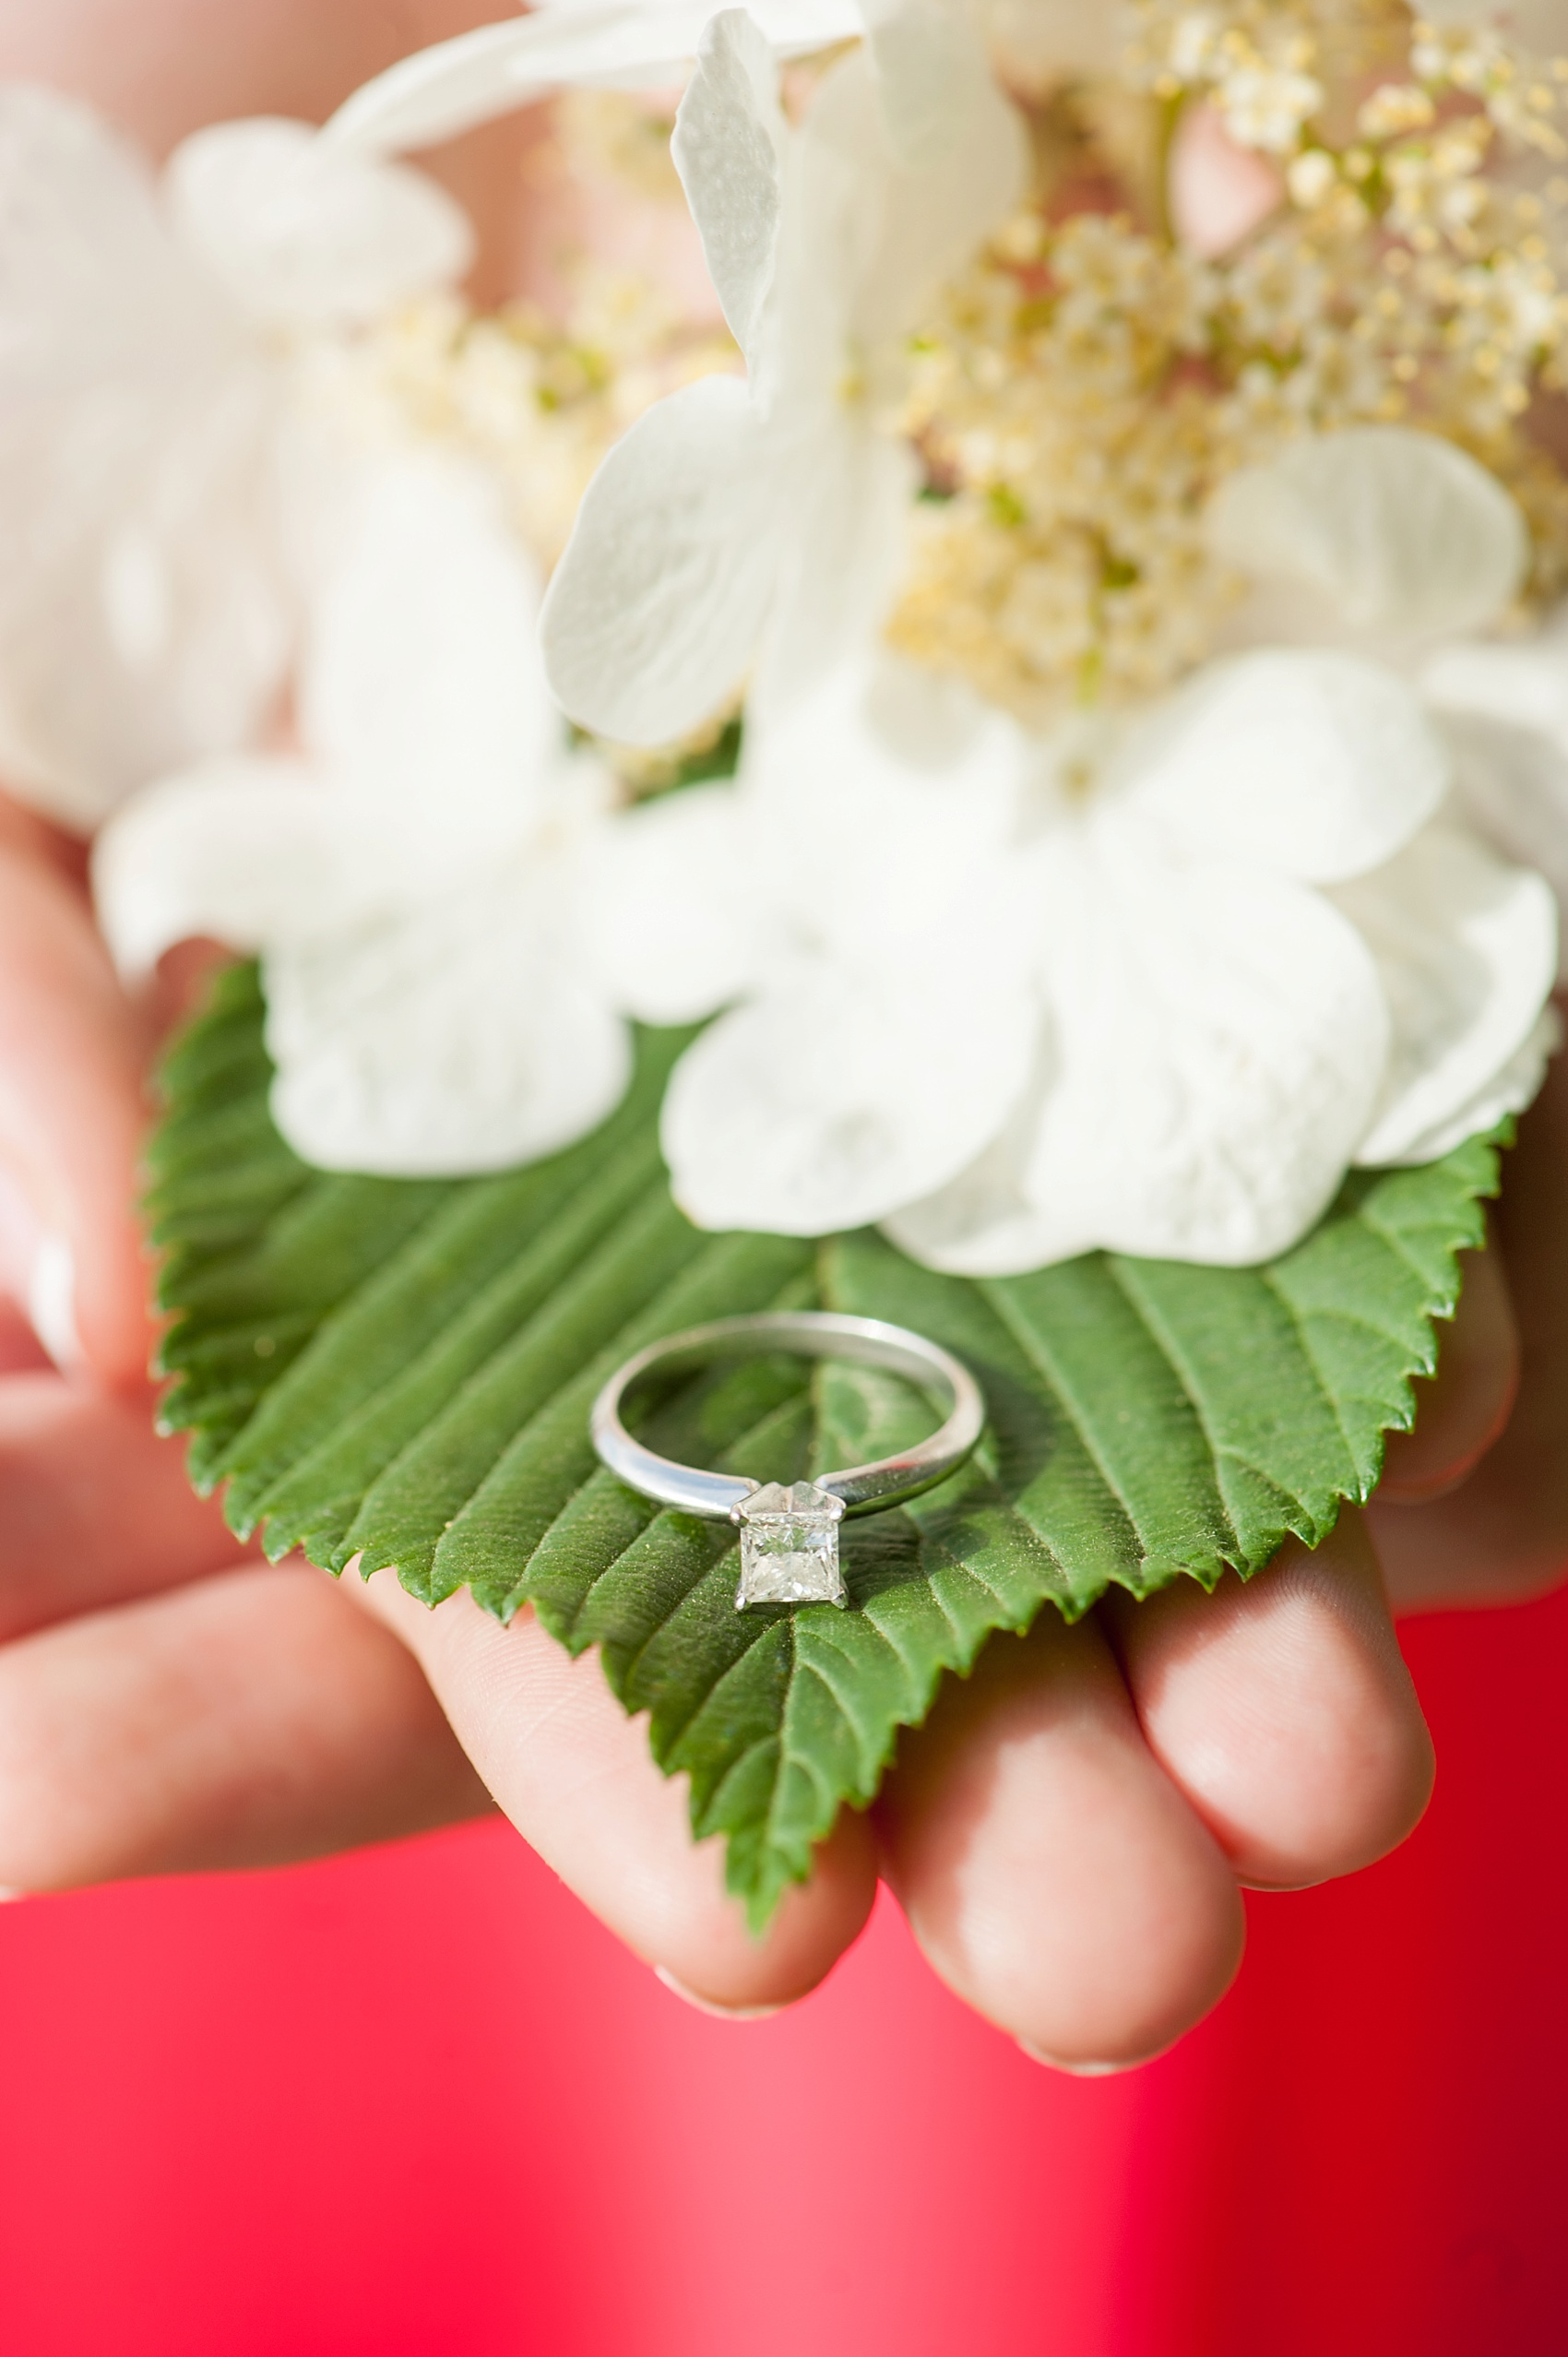 Long Island City waterfront engagement session at Gantry State Park by Mikkel Paige Photography, NYC wedding photographer. Solitaire square cut diamond engagement ring on spring hydrangea flowers.